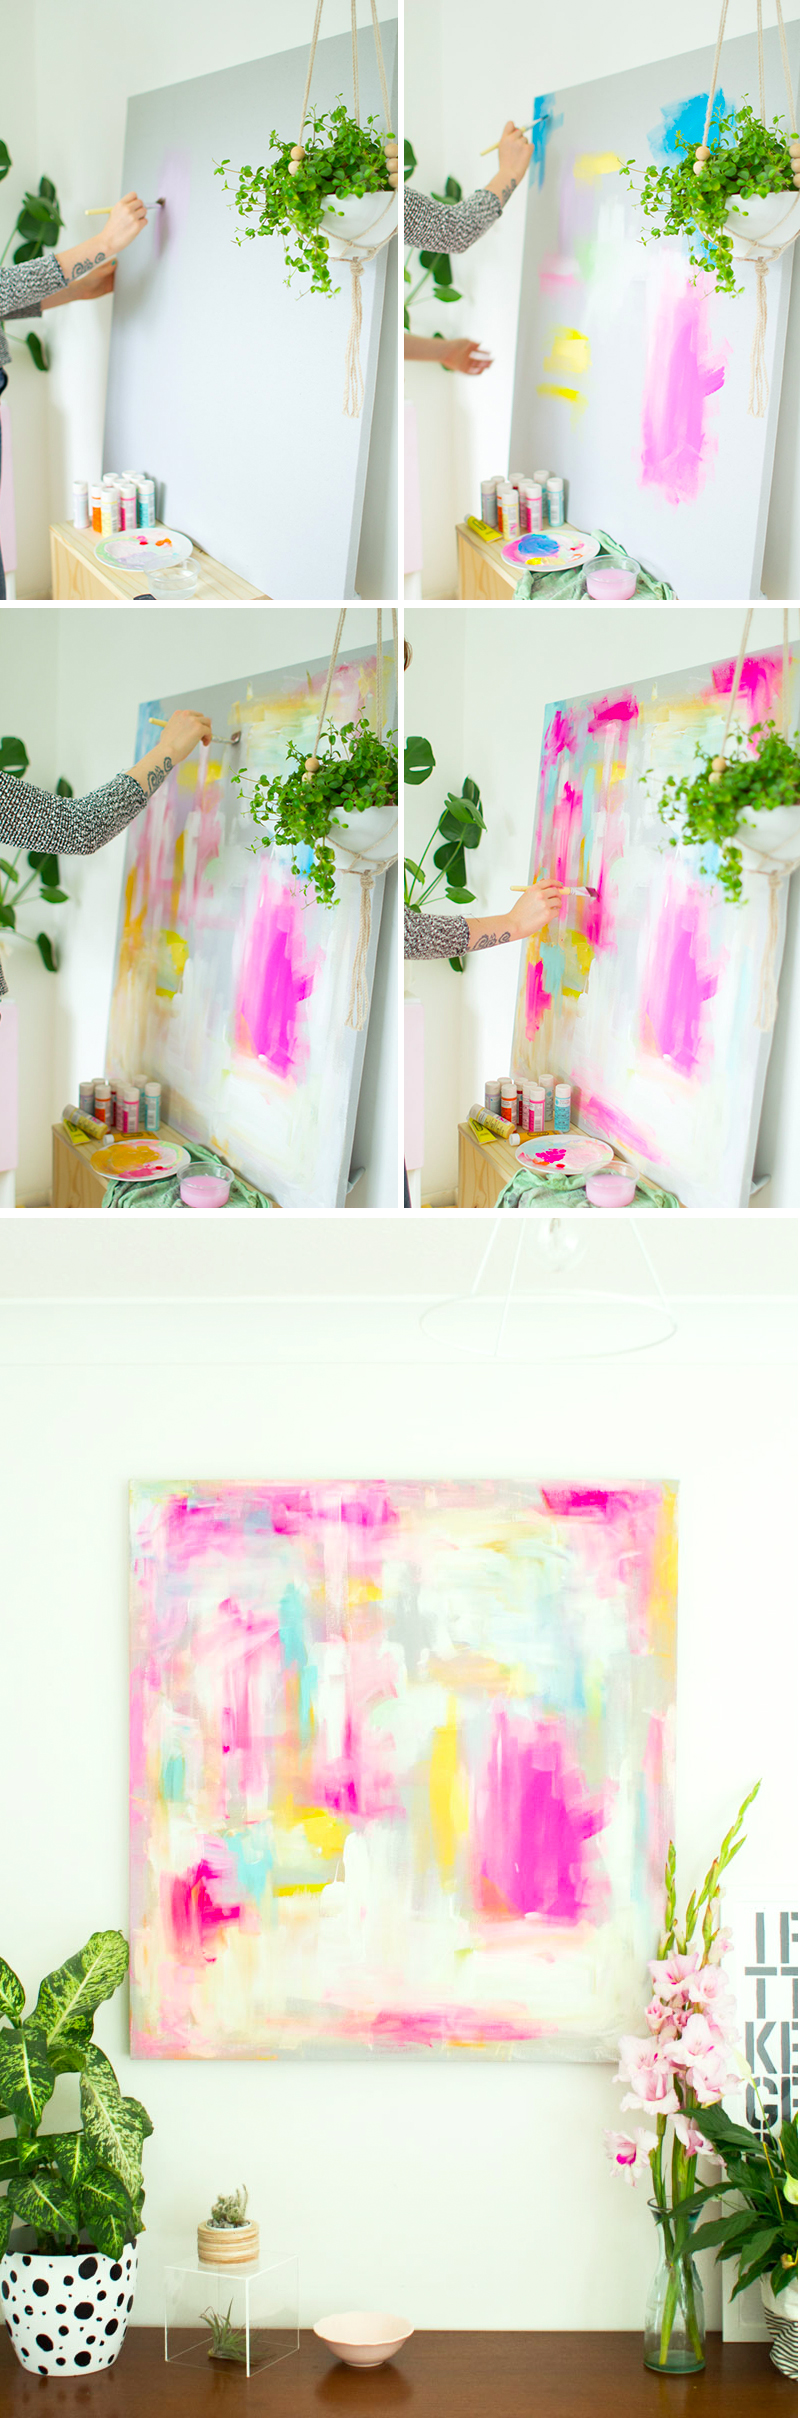 DIY Abstract Artwork - Furniture Hacks | Fall For DIY